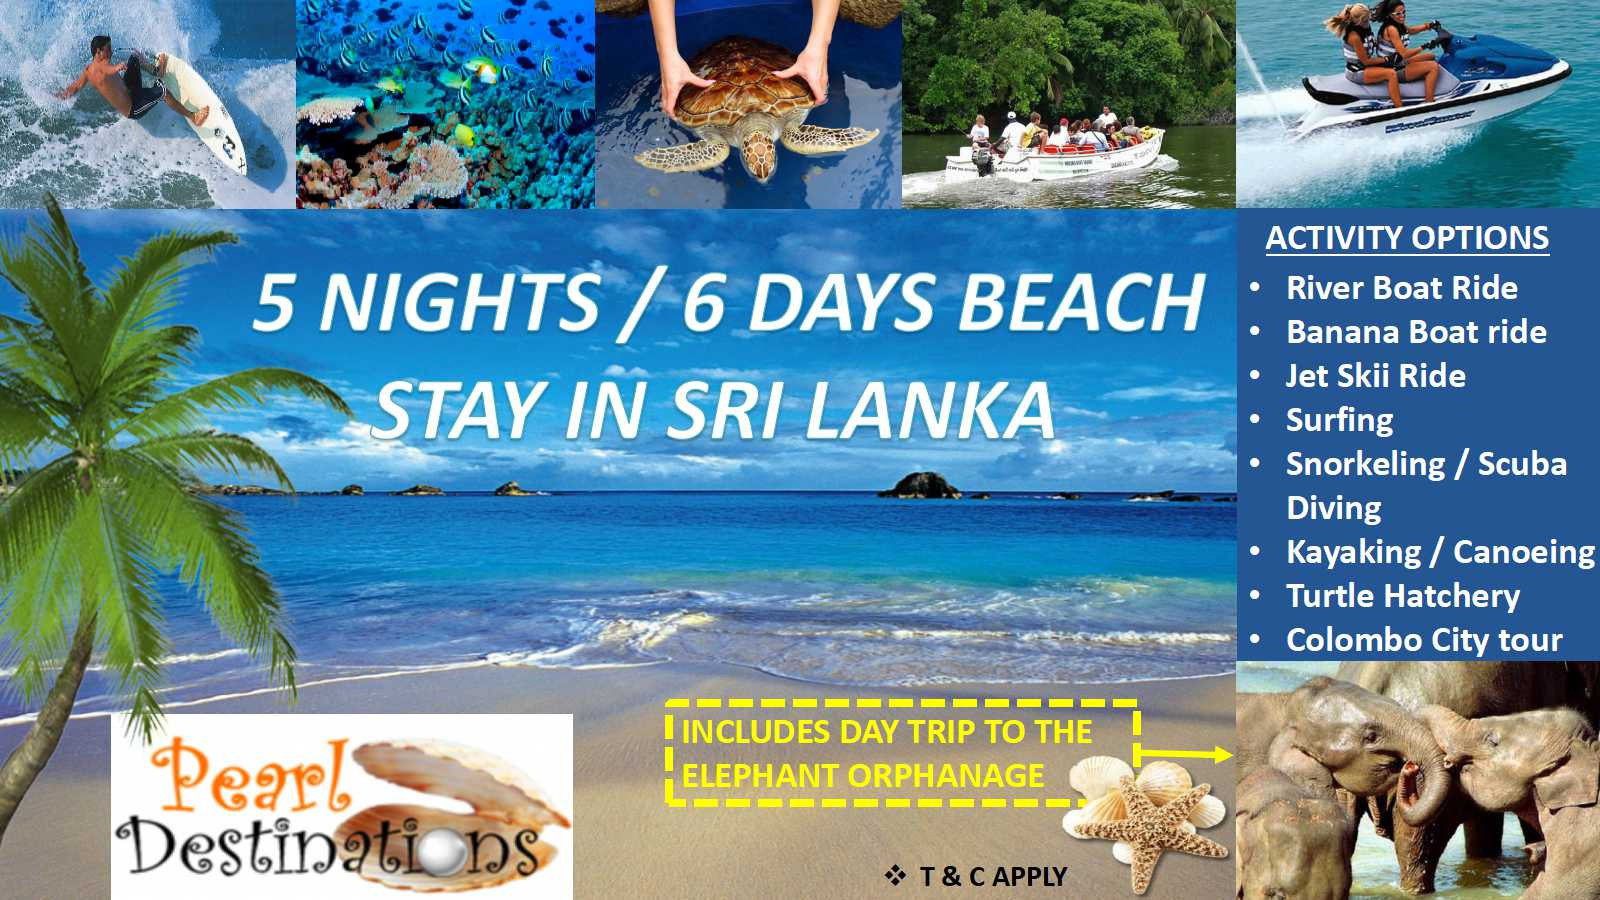 tour-winter-beach-stay-sri-lanka